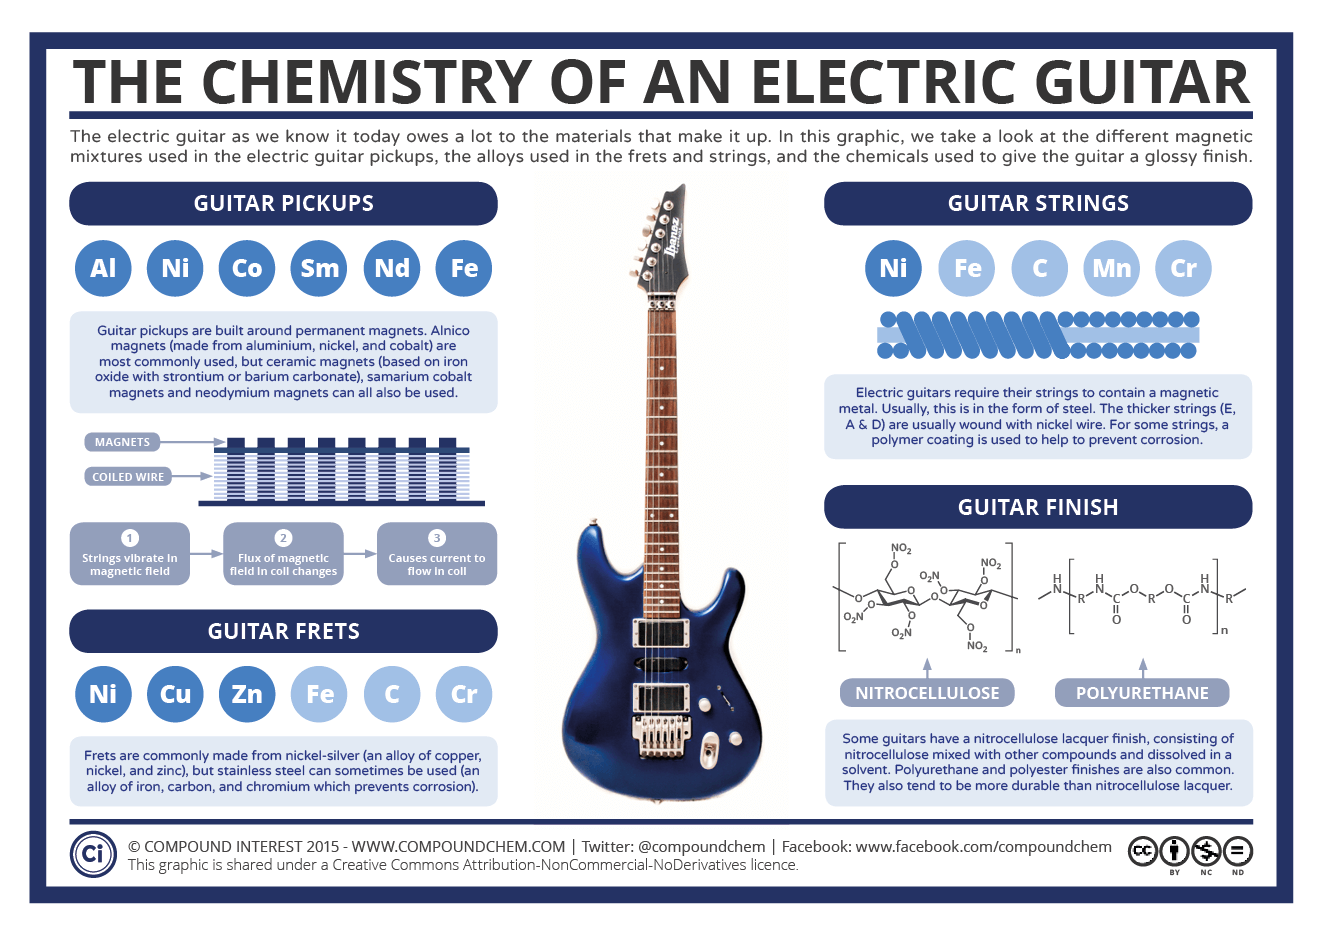 the chemistry of an electric guitar compound interest rh compoundchem com electric guitar pickup wiring schematics electric guitar single pickup wiring